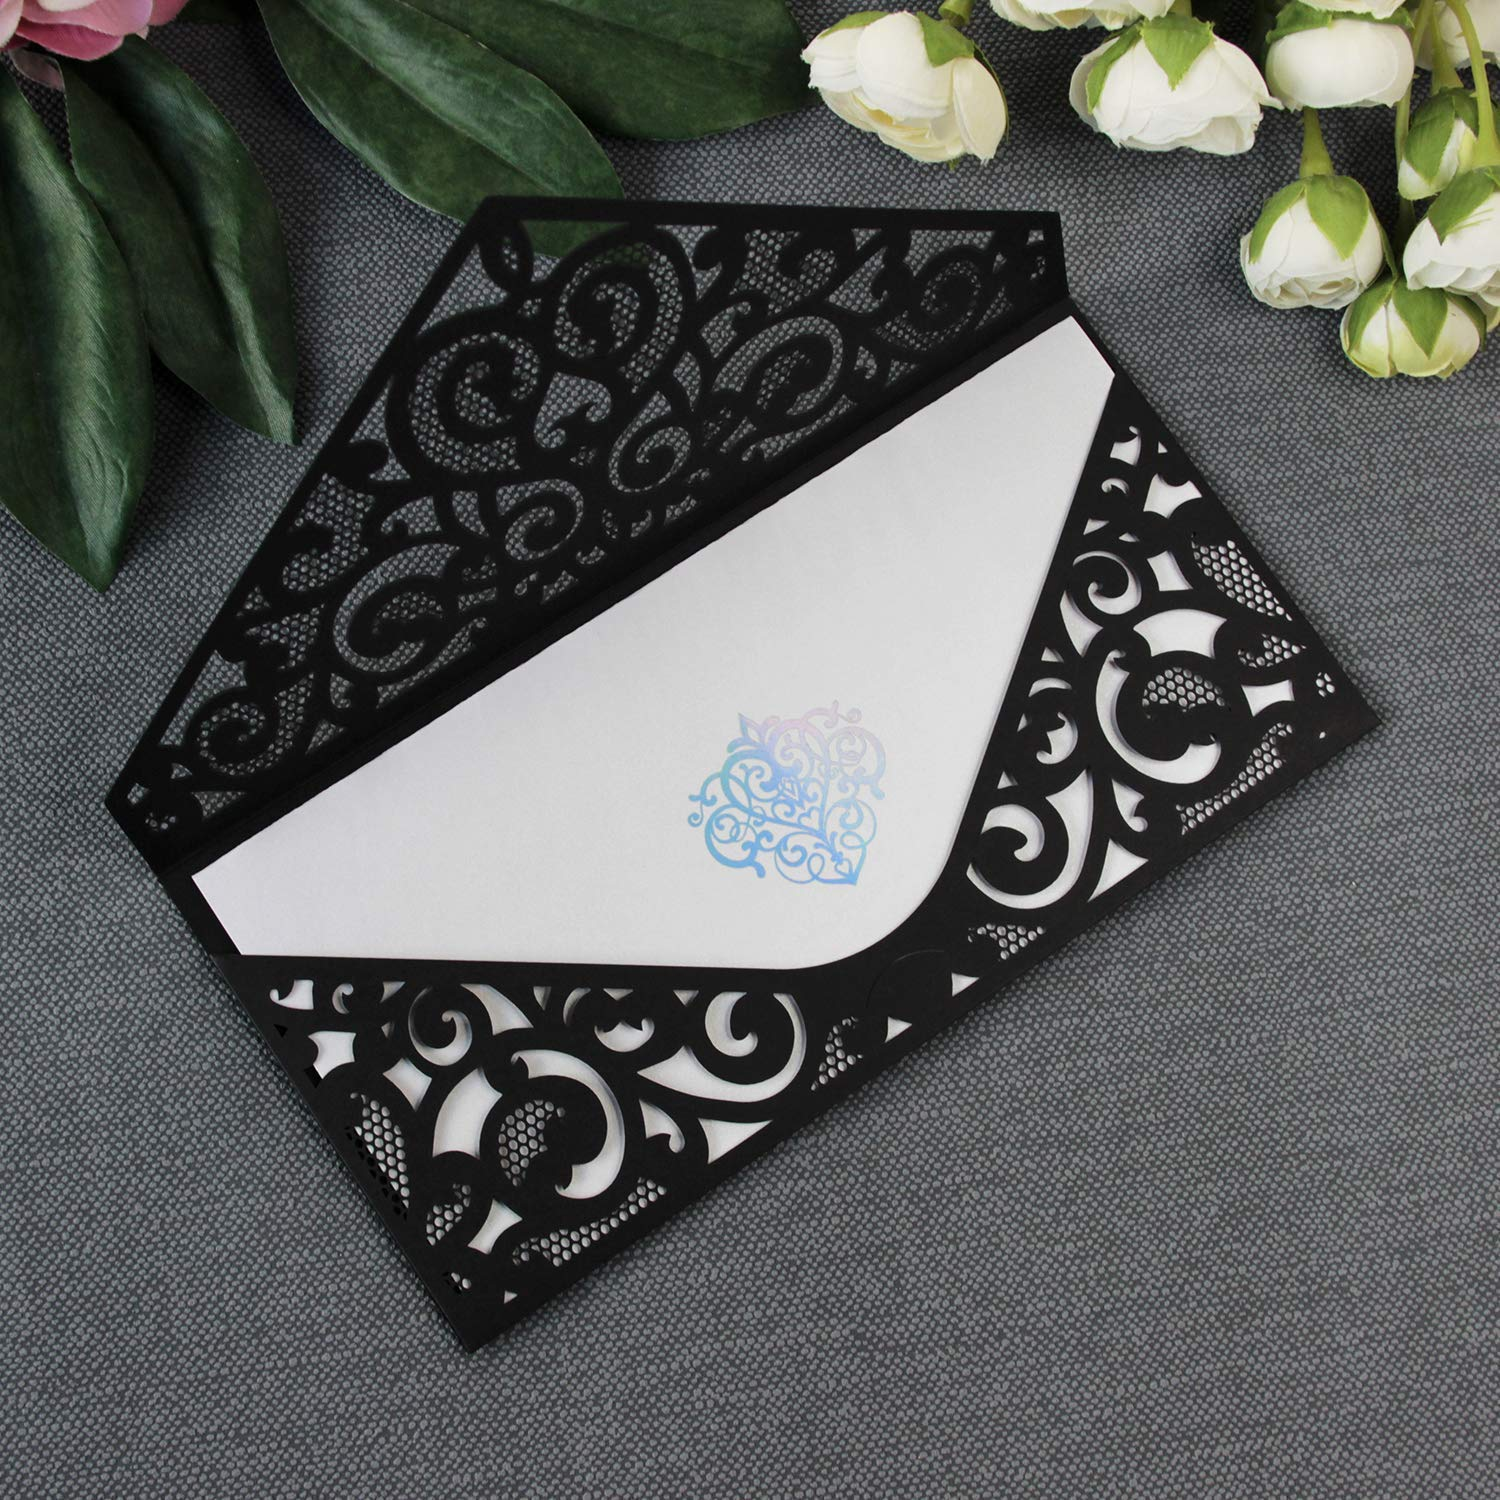 50 Cards Pack Elegant Black Wedding Invitations With Envelopes Ornamented Insert In Diy Kit Laser Cut Lace Cards With Printable Template Amazon Co Uk Handmade